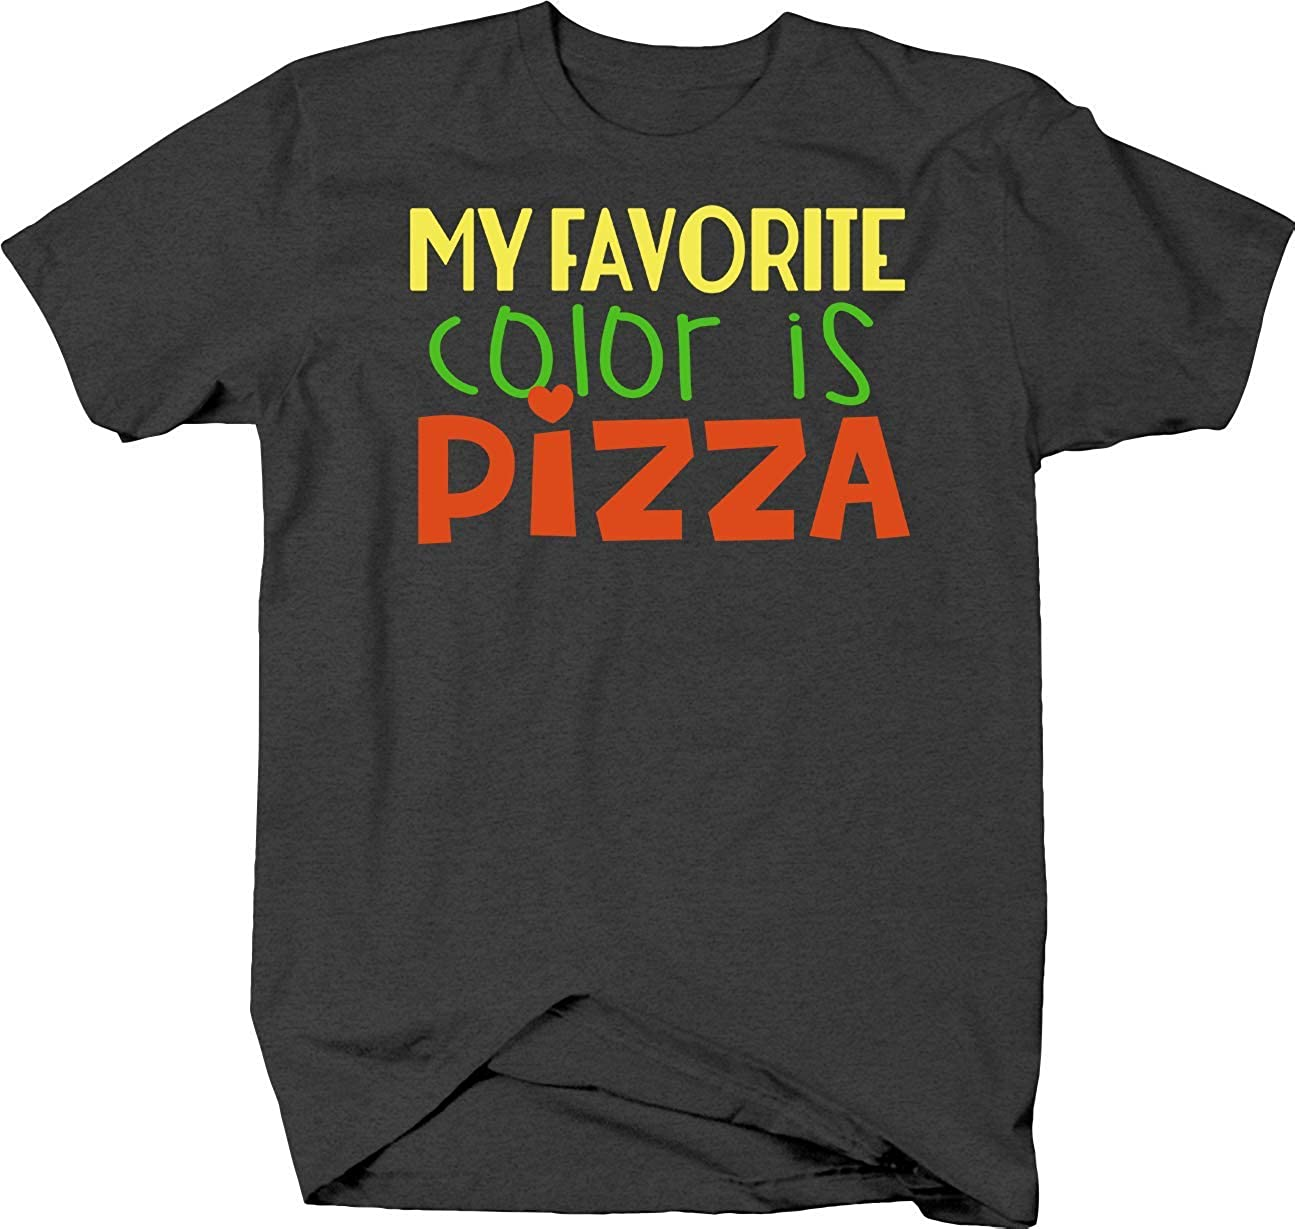 My Favorite Color is Pizza Funny for Junk Food Lovers Fanatic T Shirt for Men